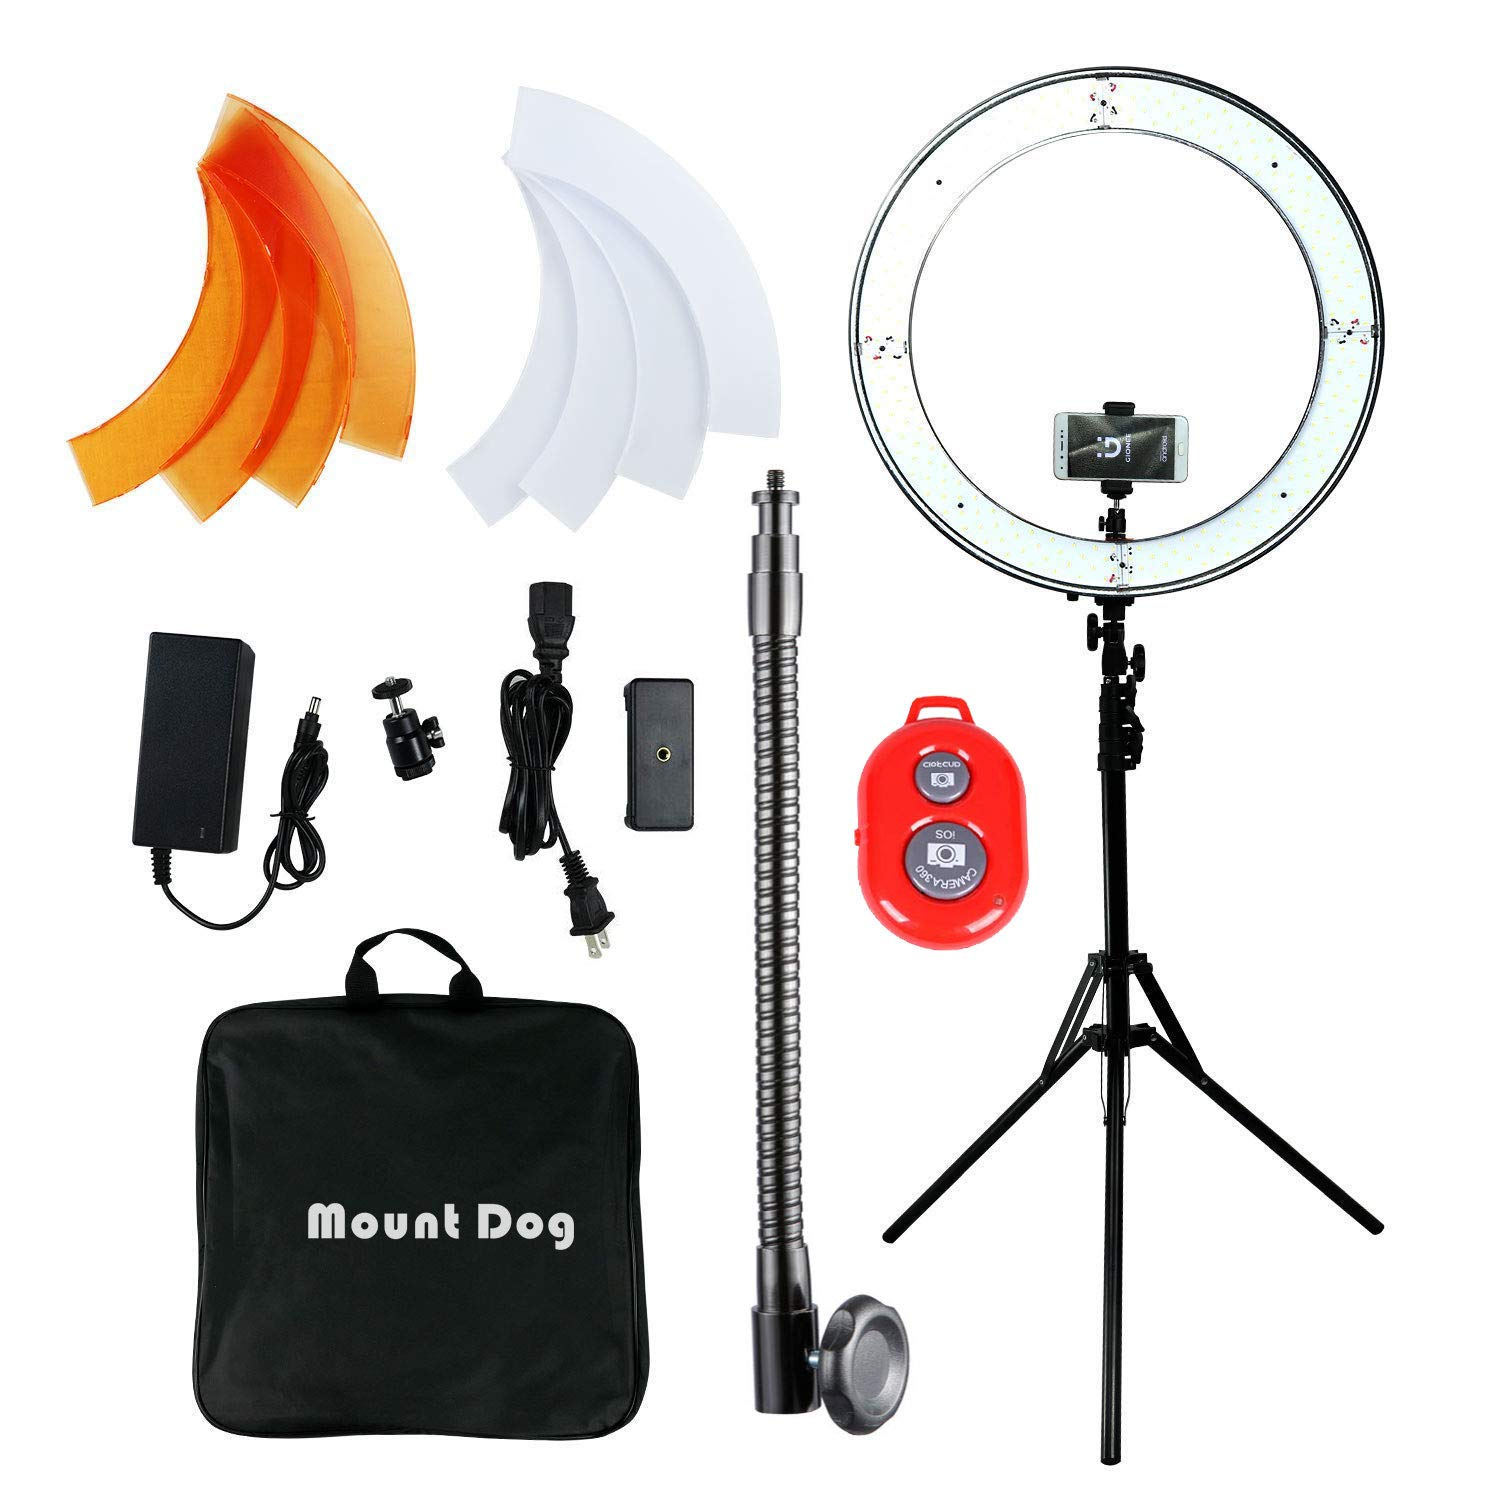 MOUNTDOG Ring Light 18 Inch 48CM 55W 240 Bulbs LED Ringlight Dimmable Round Continuous Circle Lighting Stand Kit Color Temperature Camera Mirror YouTube Video Makeup Lighting Bluetooth Remote Control